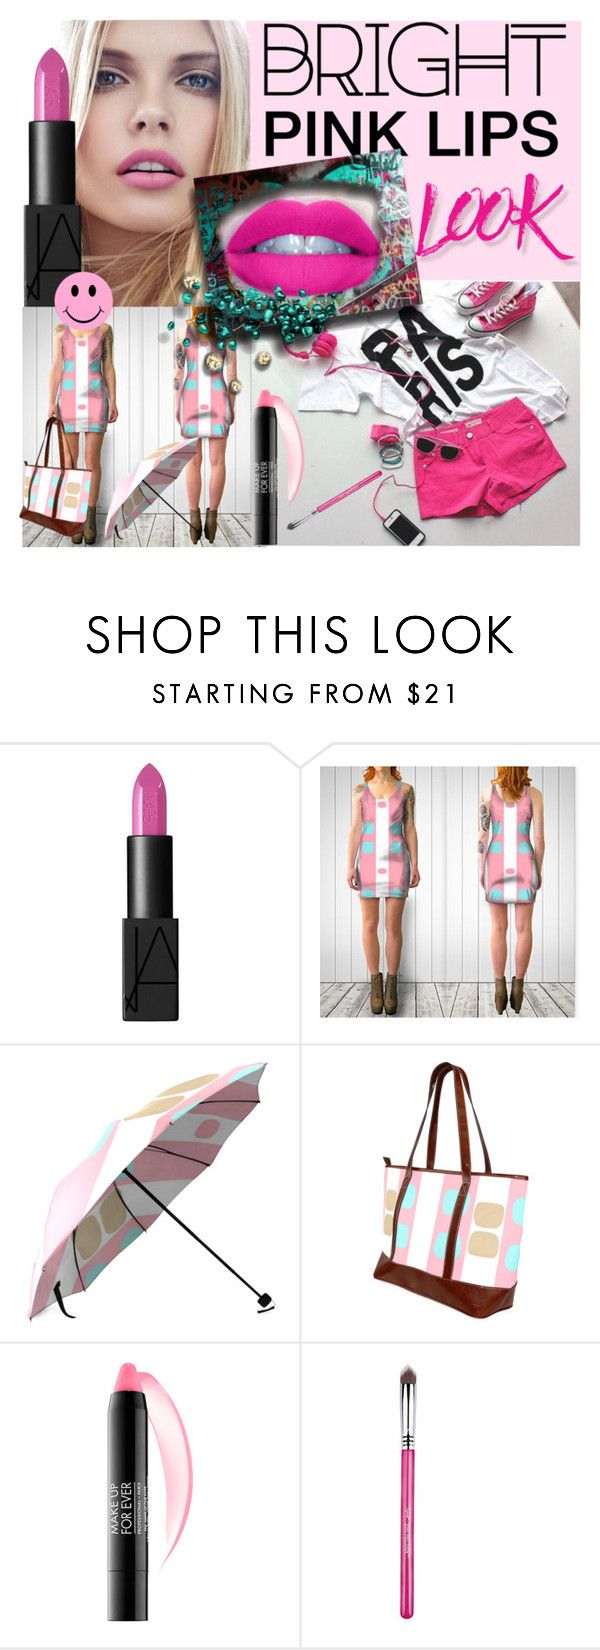 """BRIGHT PINK LIPS LOOK"" by annabelle-h-ringen-nymo ❤ liked on Polyvore featuring Schönheit, NARS Cosmetics, GURU und MAKE UP FOR EVER"